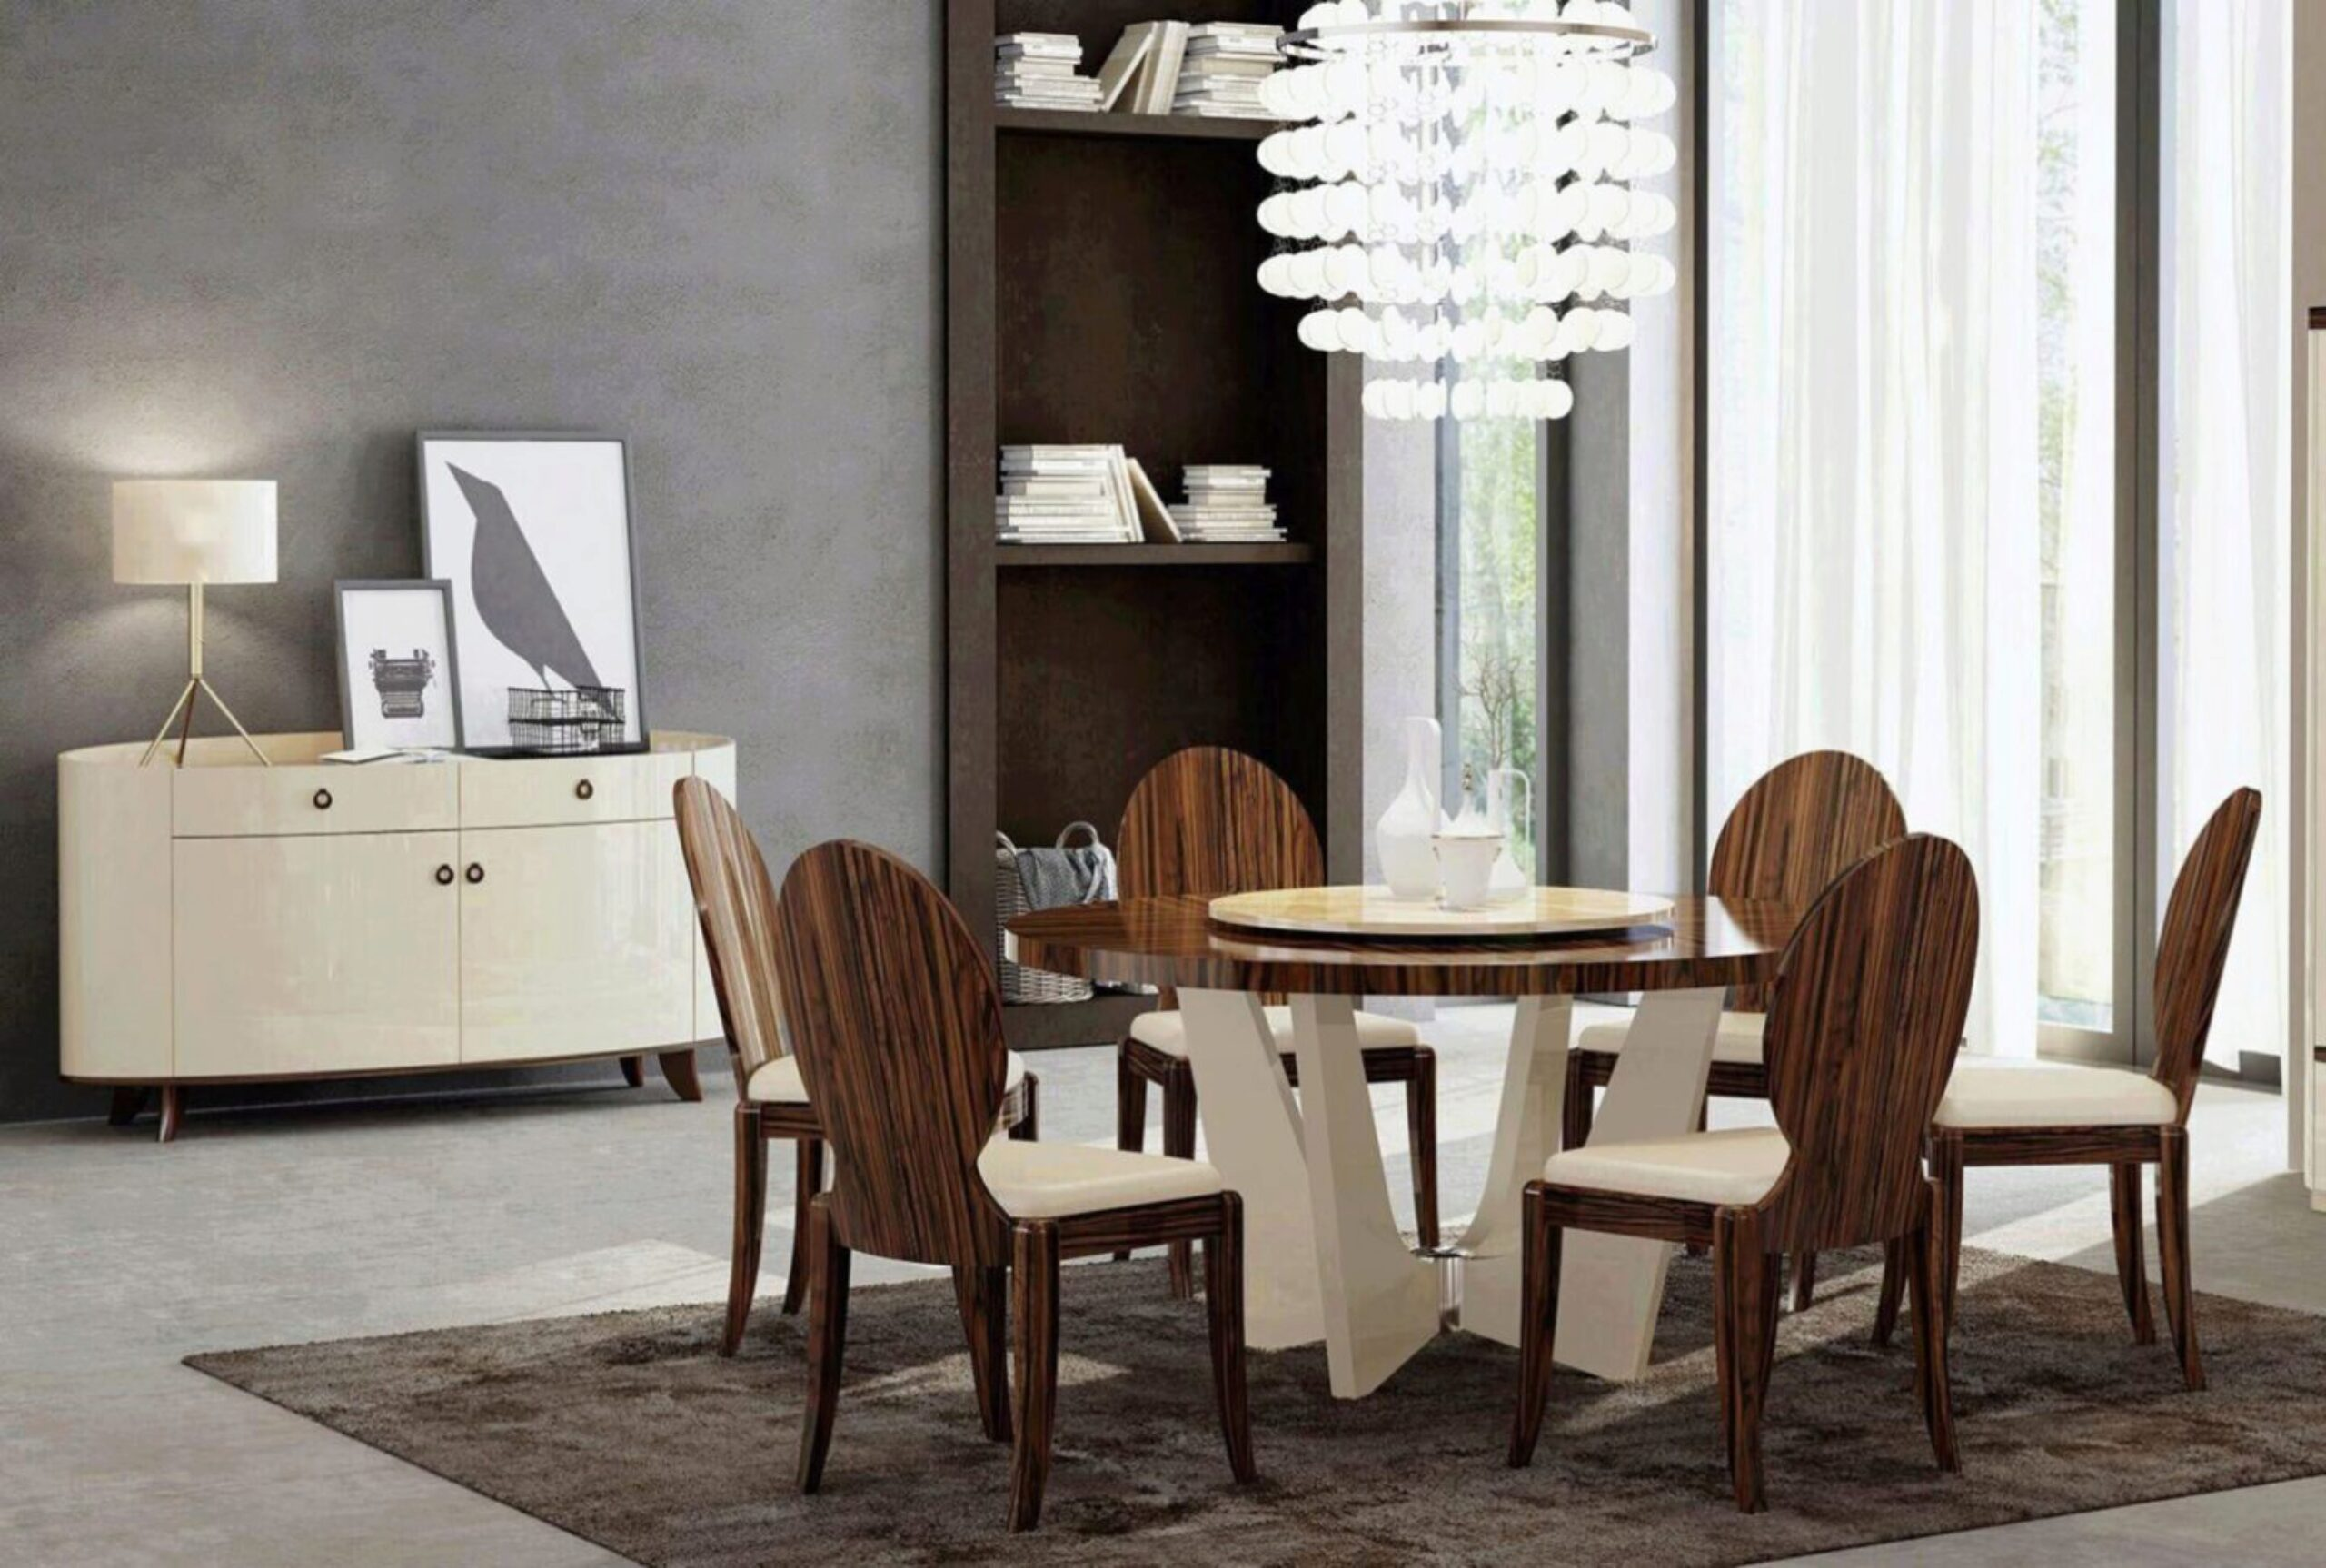 Modern Design Rosewood Dining Room Set, Dining Room Table For 8